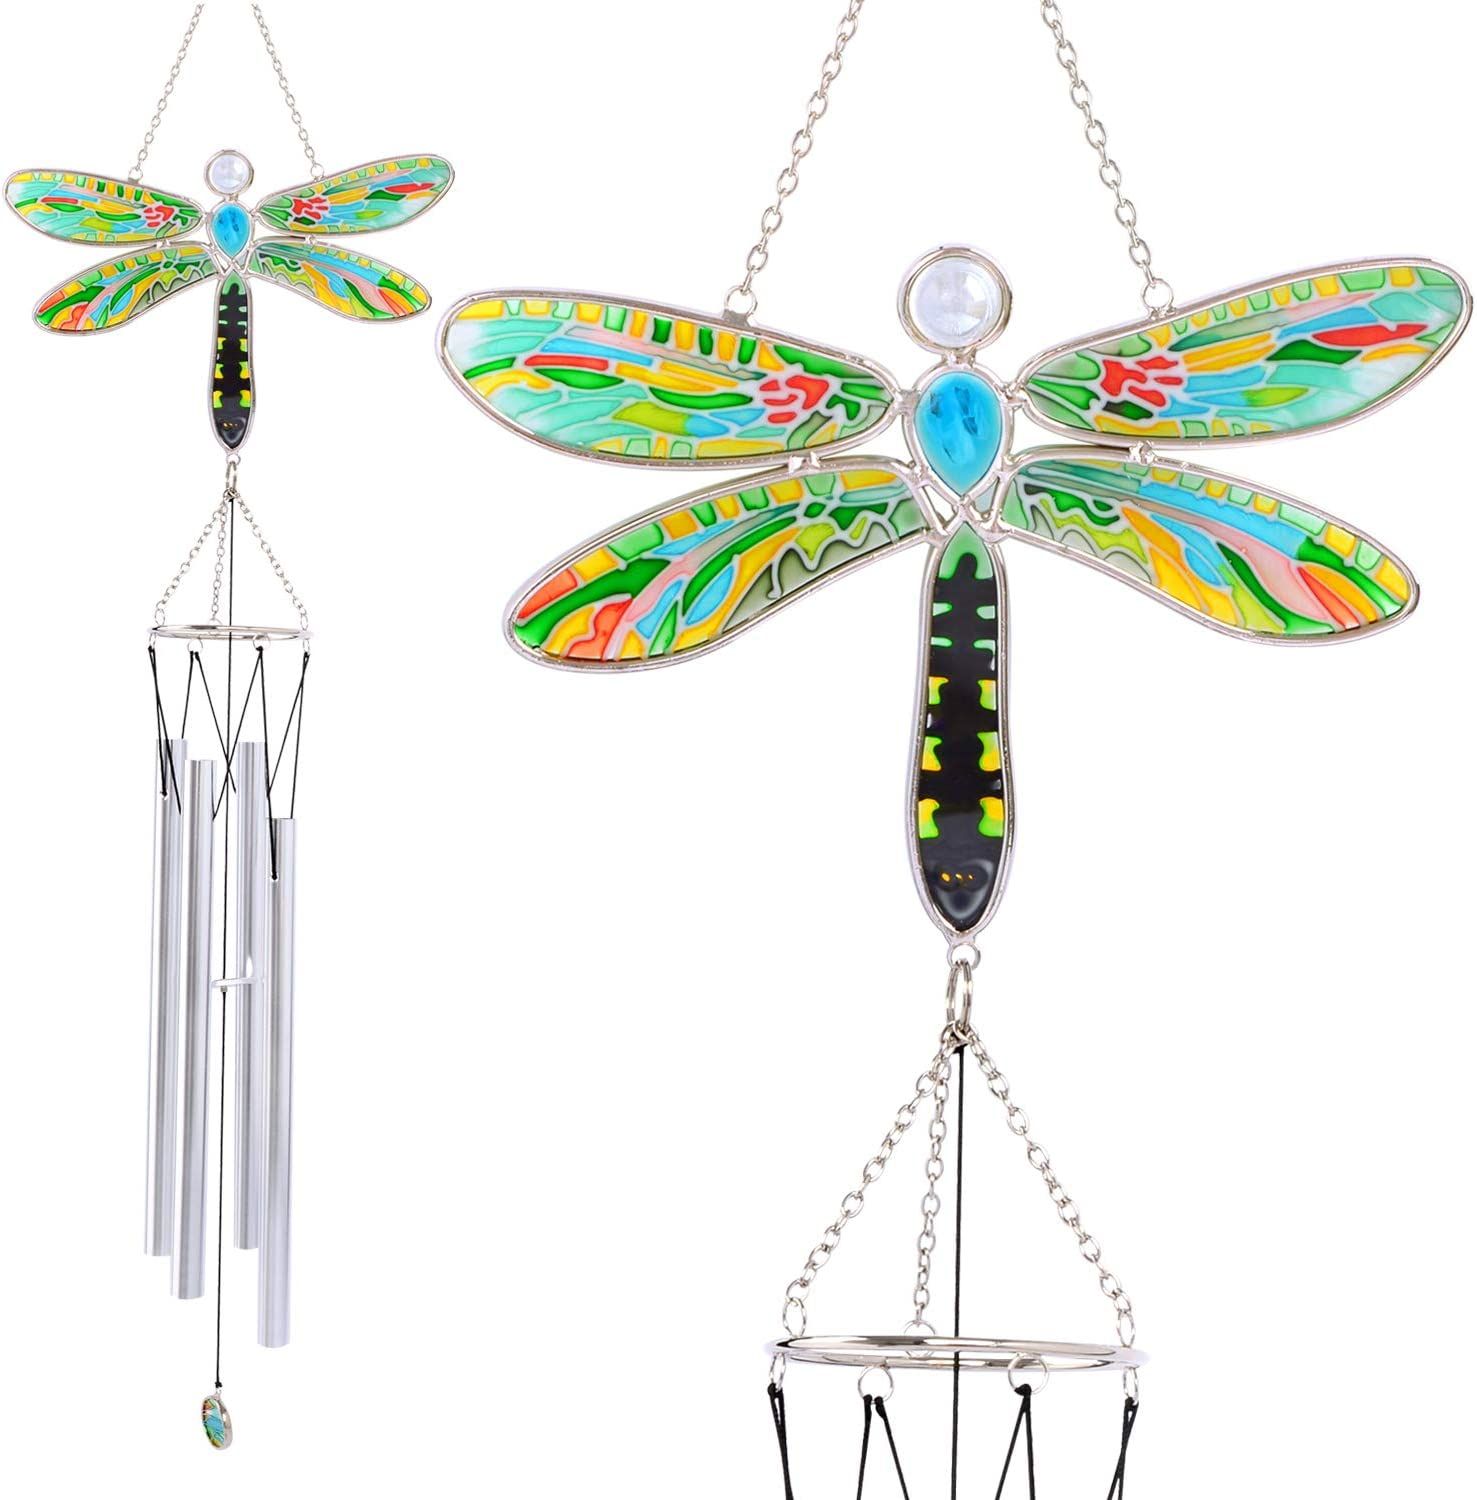 Wind chimes, Dragonfly wind chimes, Wind chimes outdoor, Home decor, Yard decor, Wind chimes outdoor large deep tone, Memorial wind chime, Gifts for mom, Wind chimes gift, Birthday gifts, Grandma gift